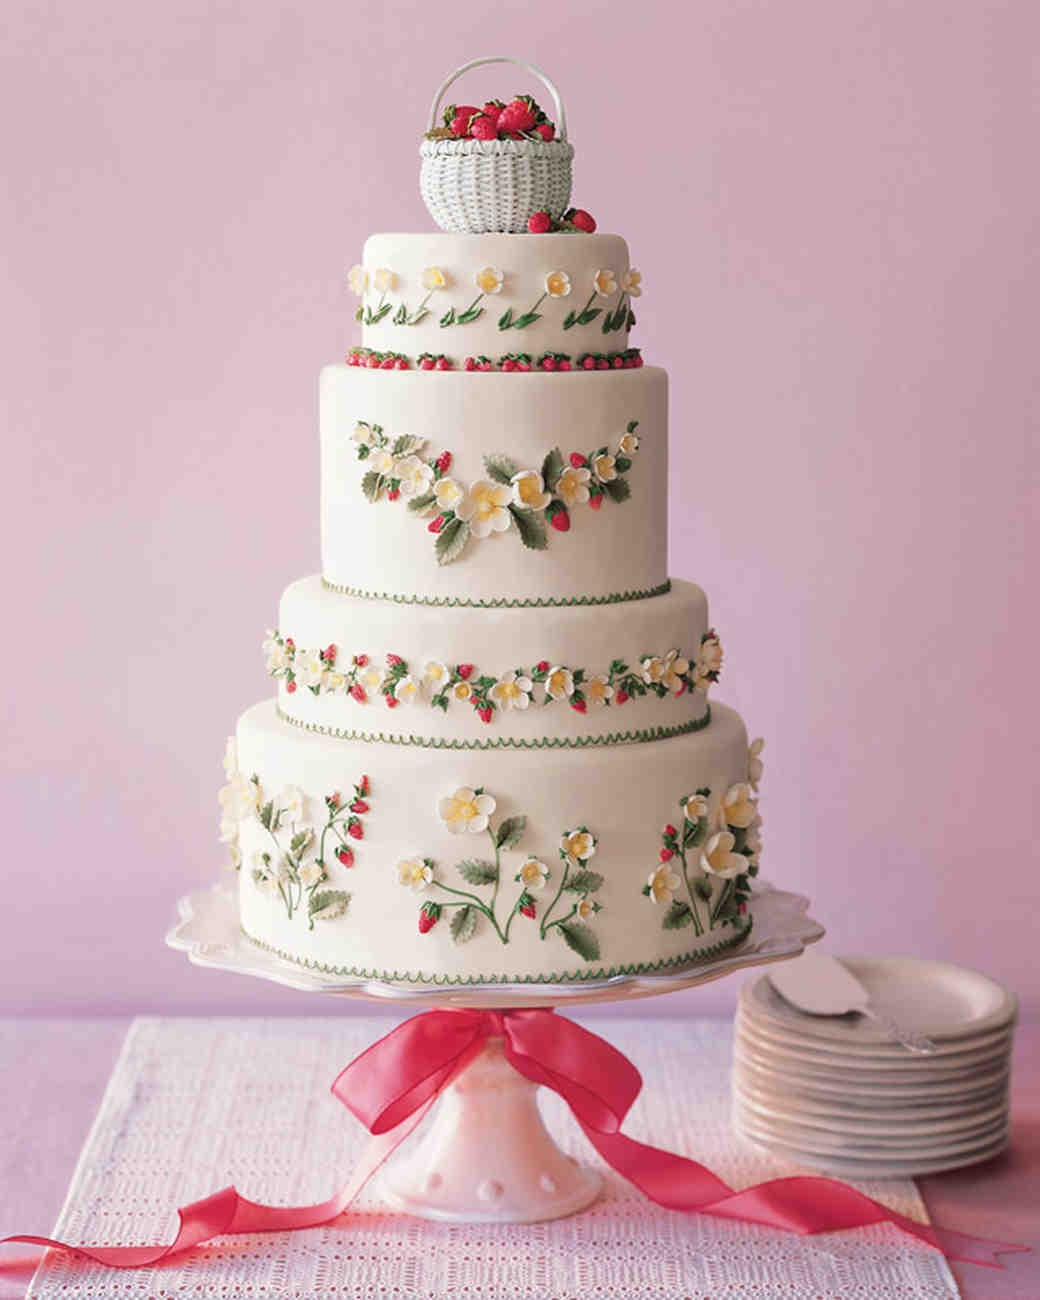 Strawberry and Floral Wedding Cake